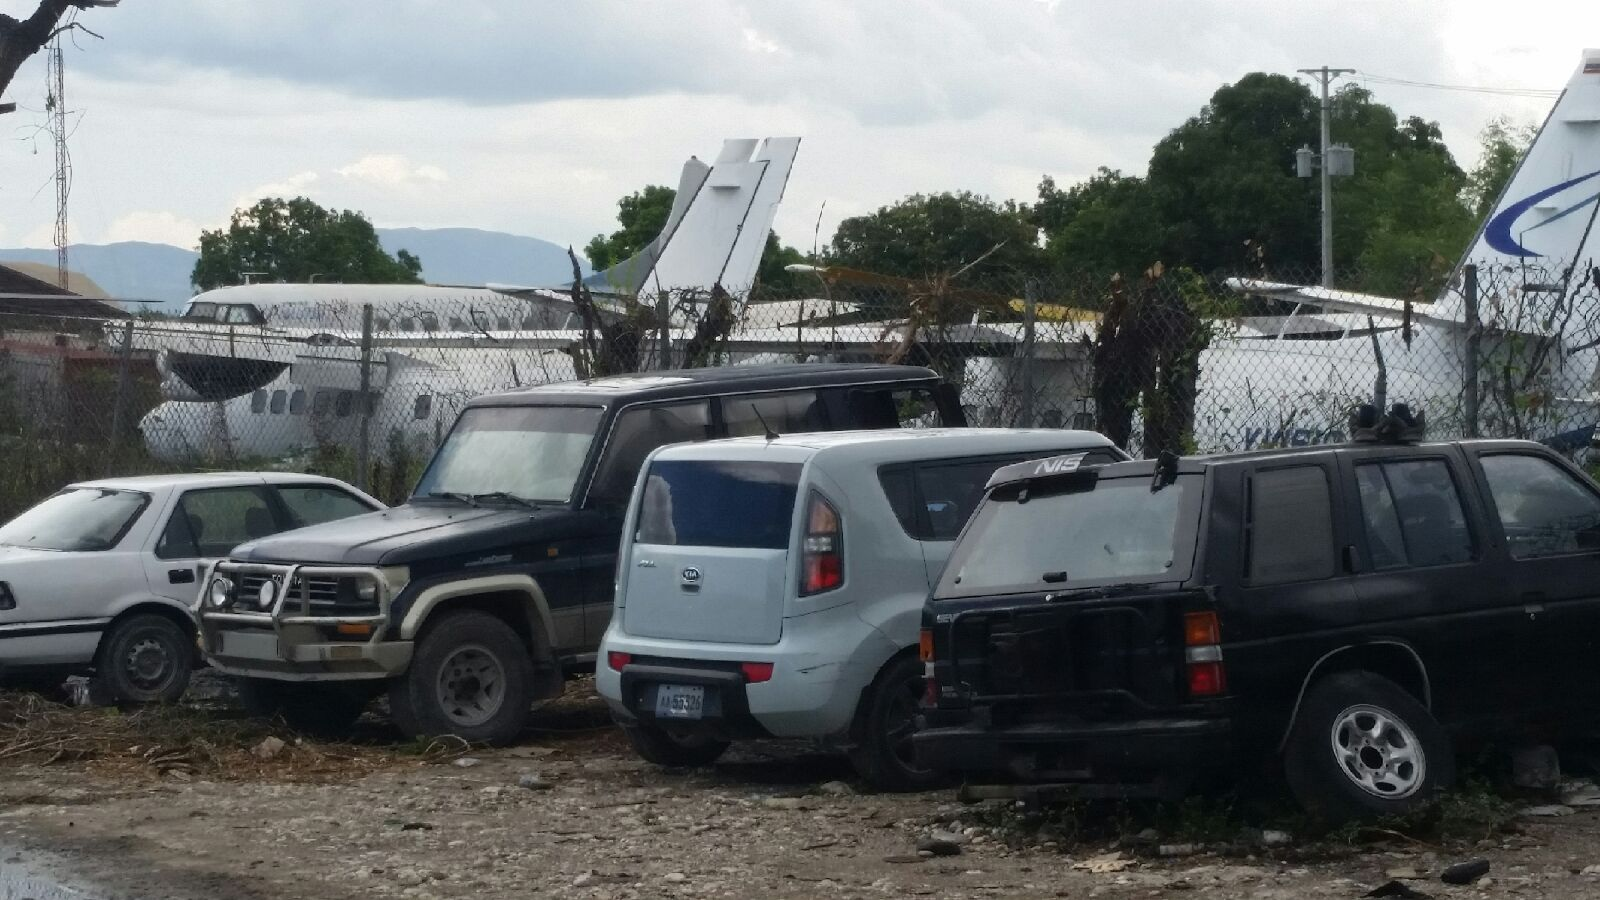 Picture of Haitian Airport just outside of Haitian Taxi station